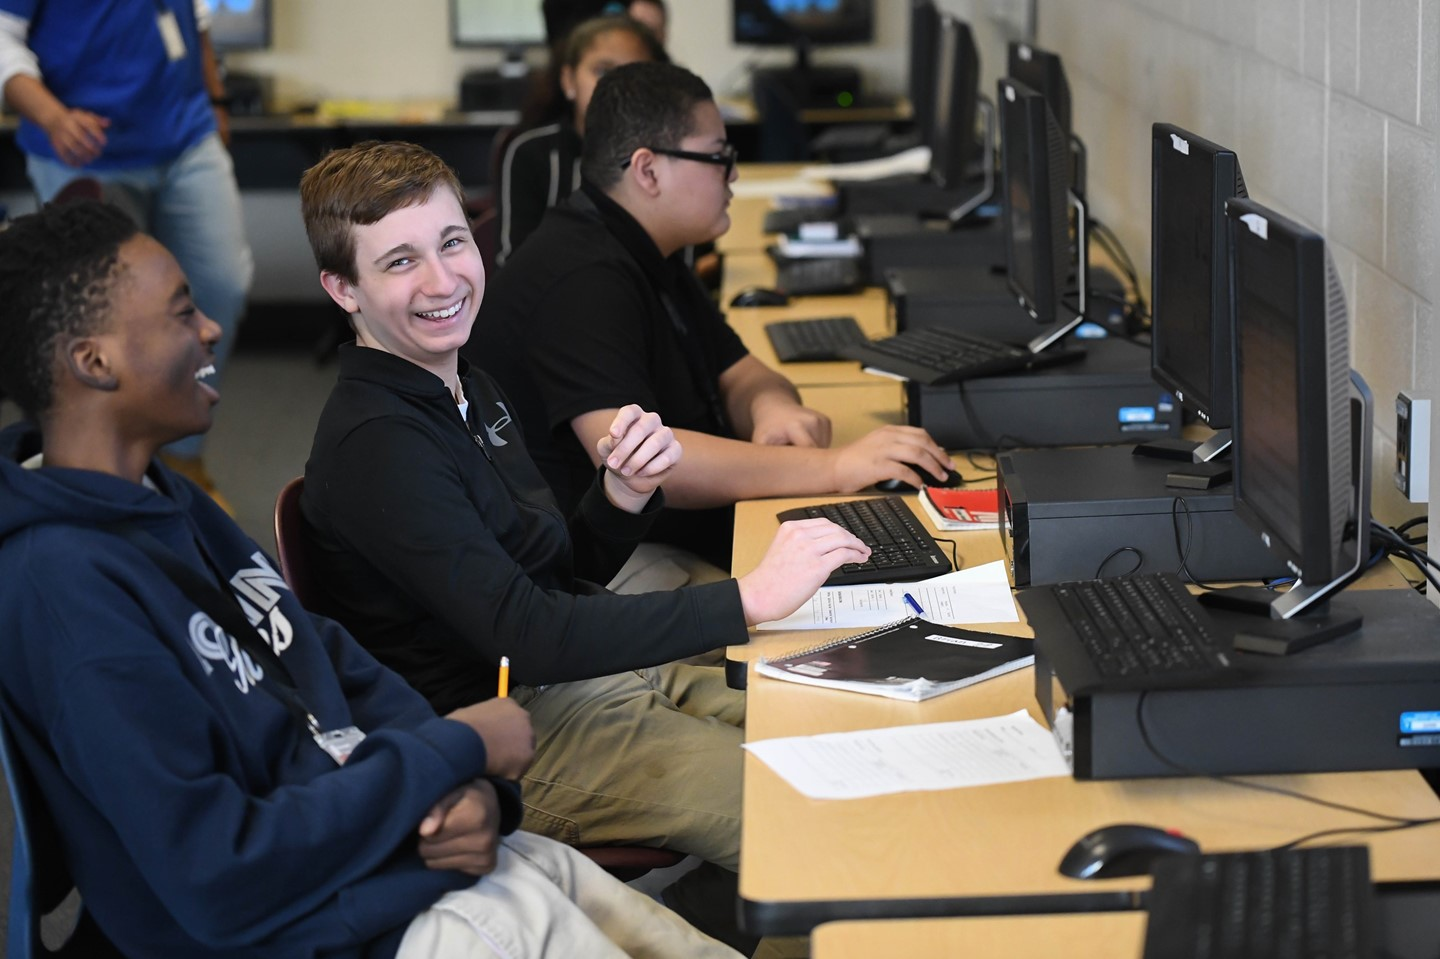 Scholars work on their computers at GJW